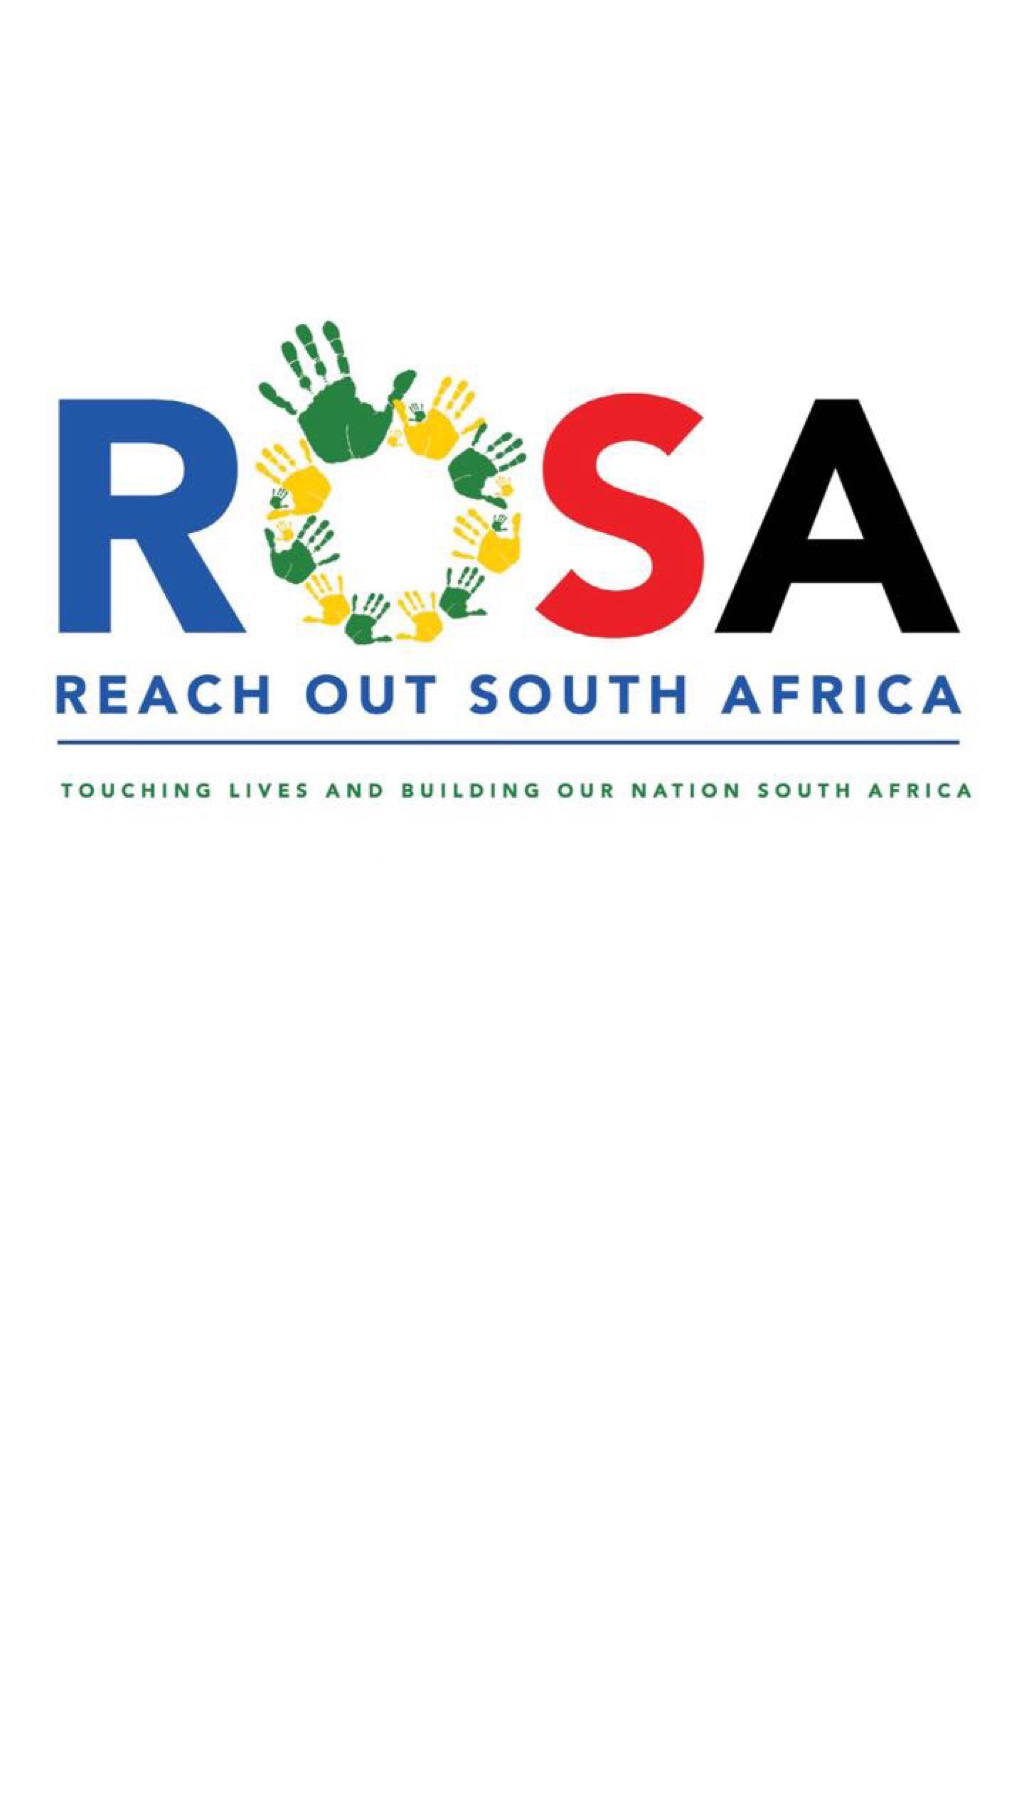 REACH OUT SOUTH AFRICA 2017